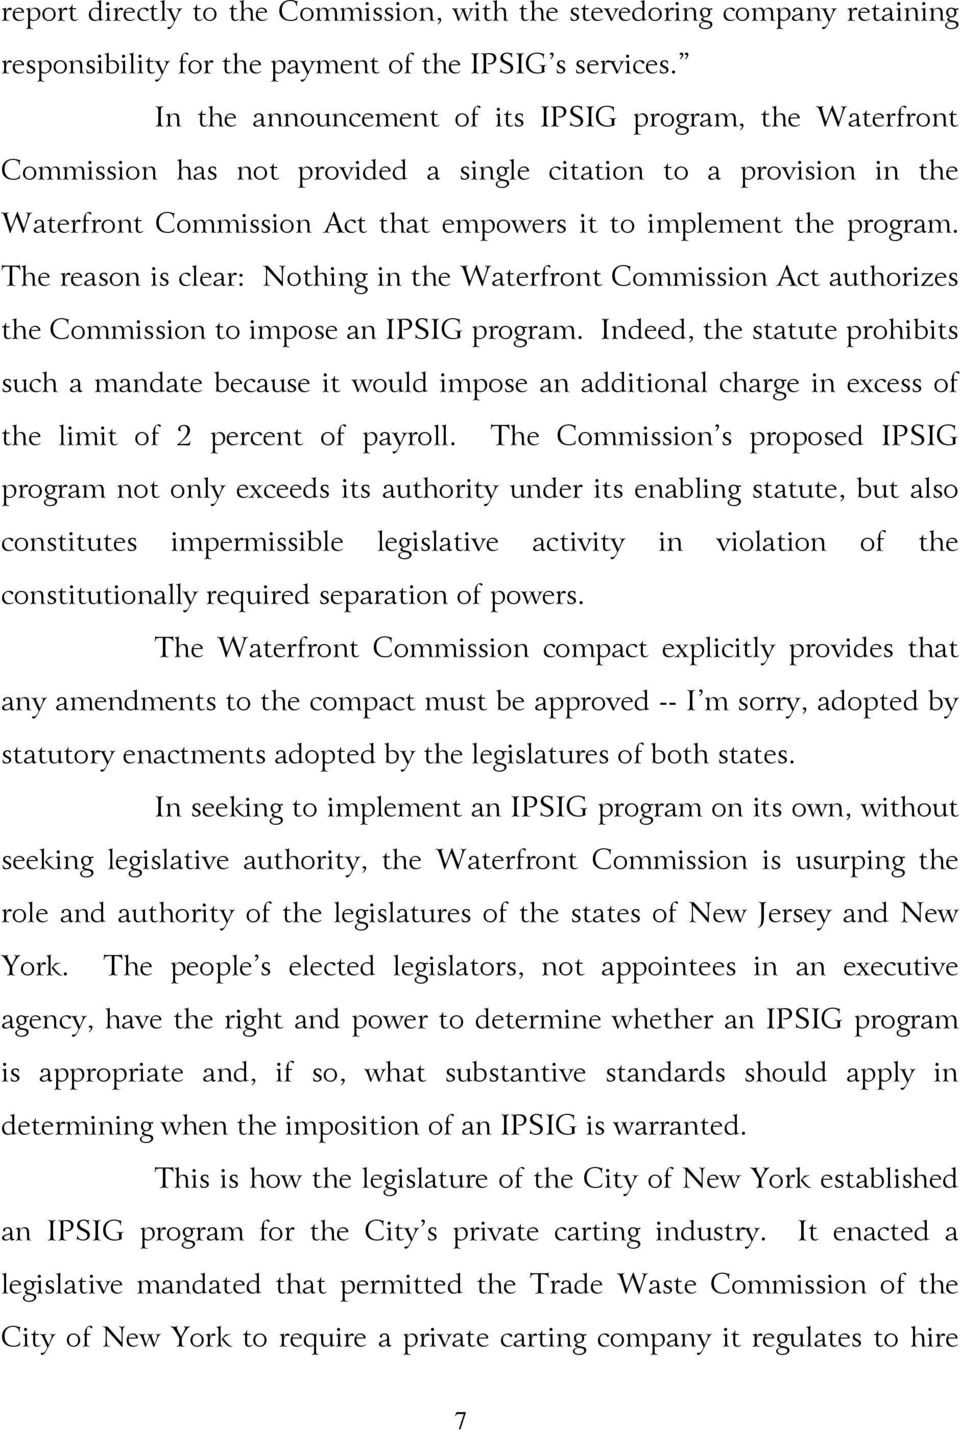 The reason is clear: Nothing in the Waterfront Commission Act authorizes the Commission to impose an IPSIG program.